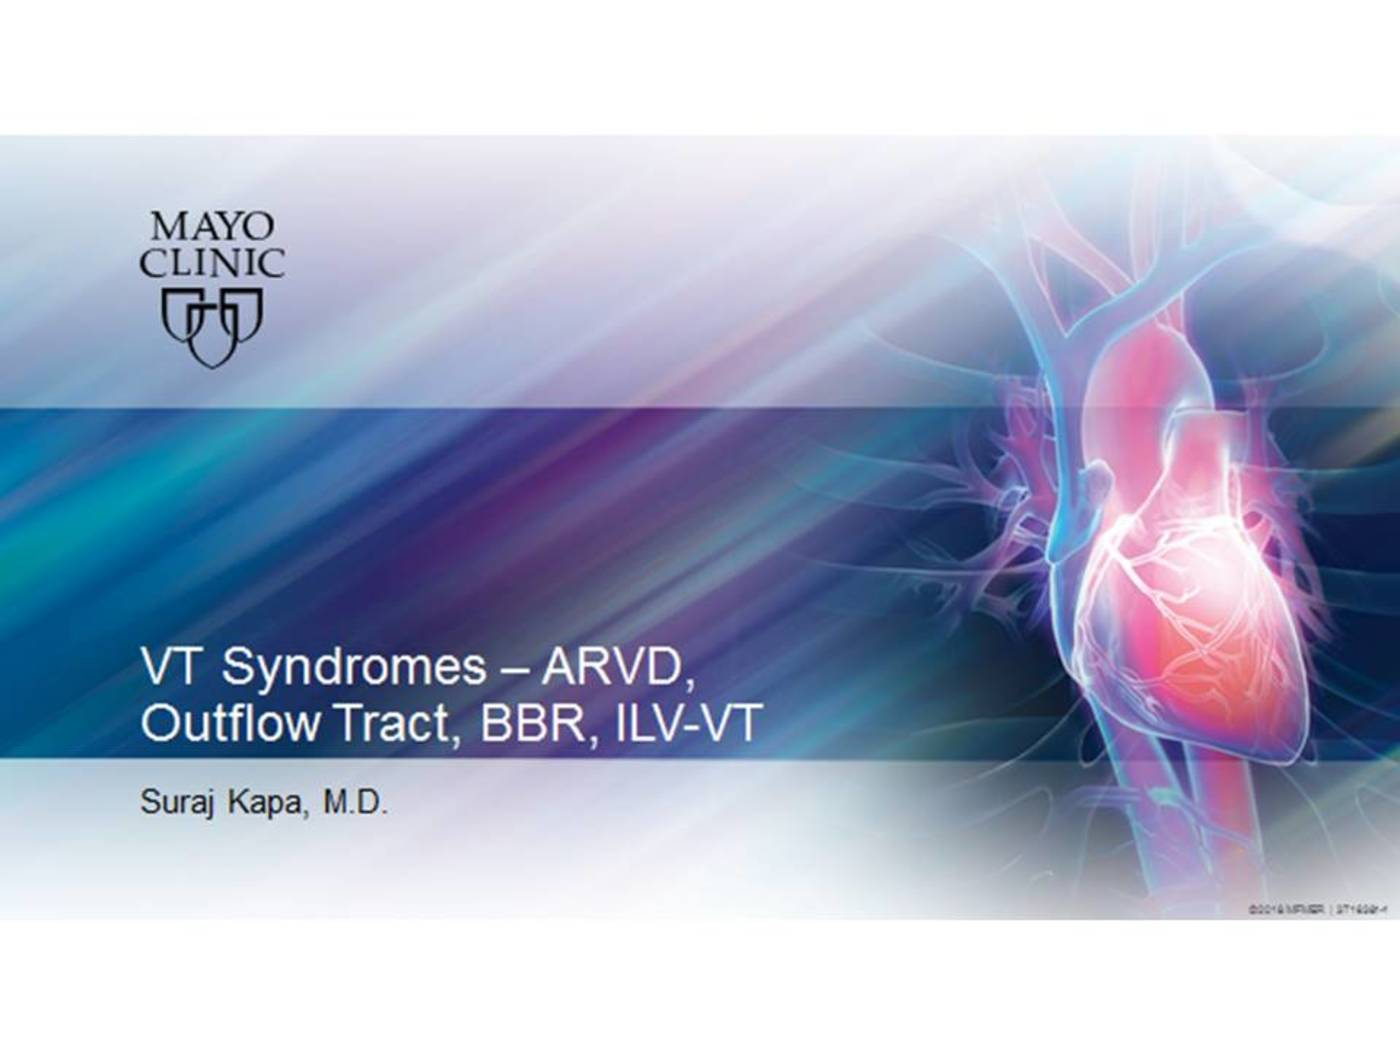 VT Syndromes - ARVD, Outflow Tract, BBR, ILV-VT